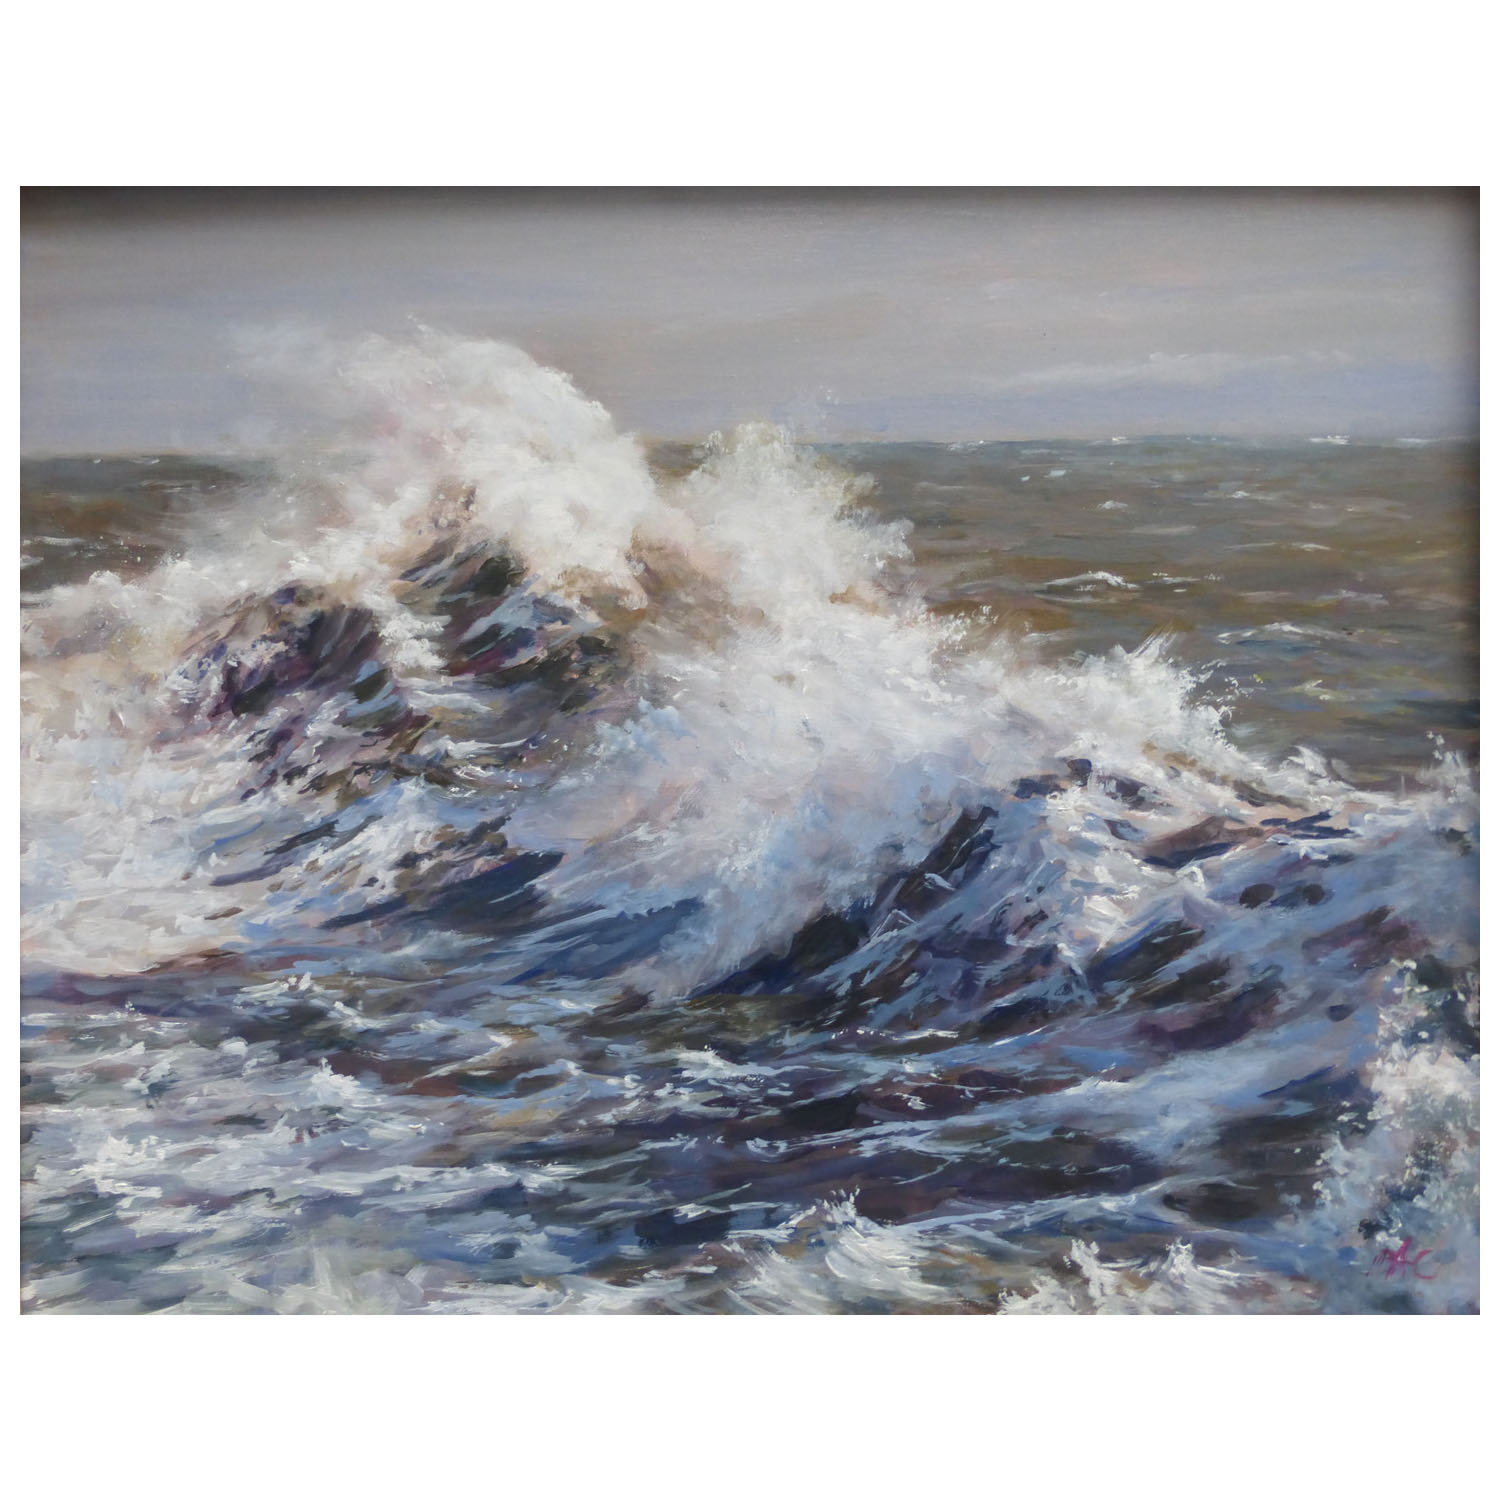 Brian A Collins ARSMA, The Power in a Wave, Oil, 350mmx450mm, £495